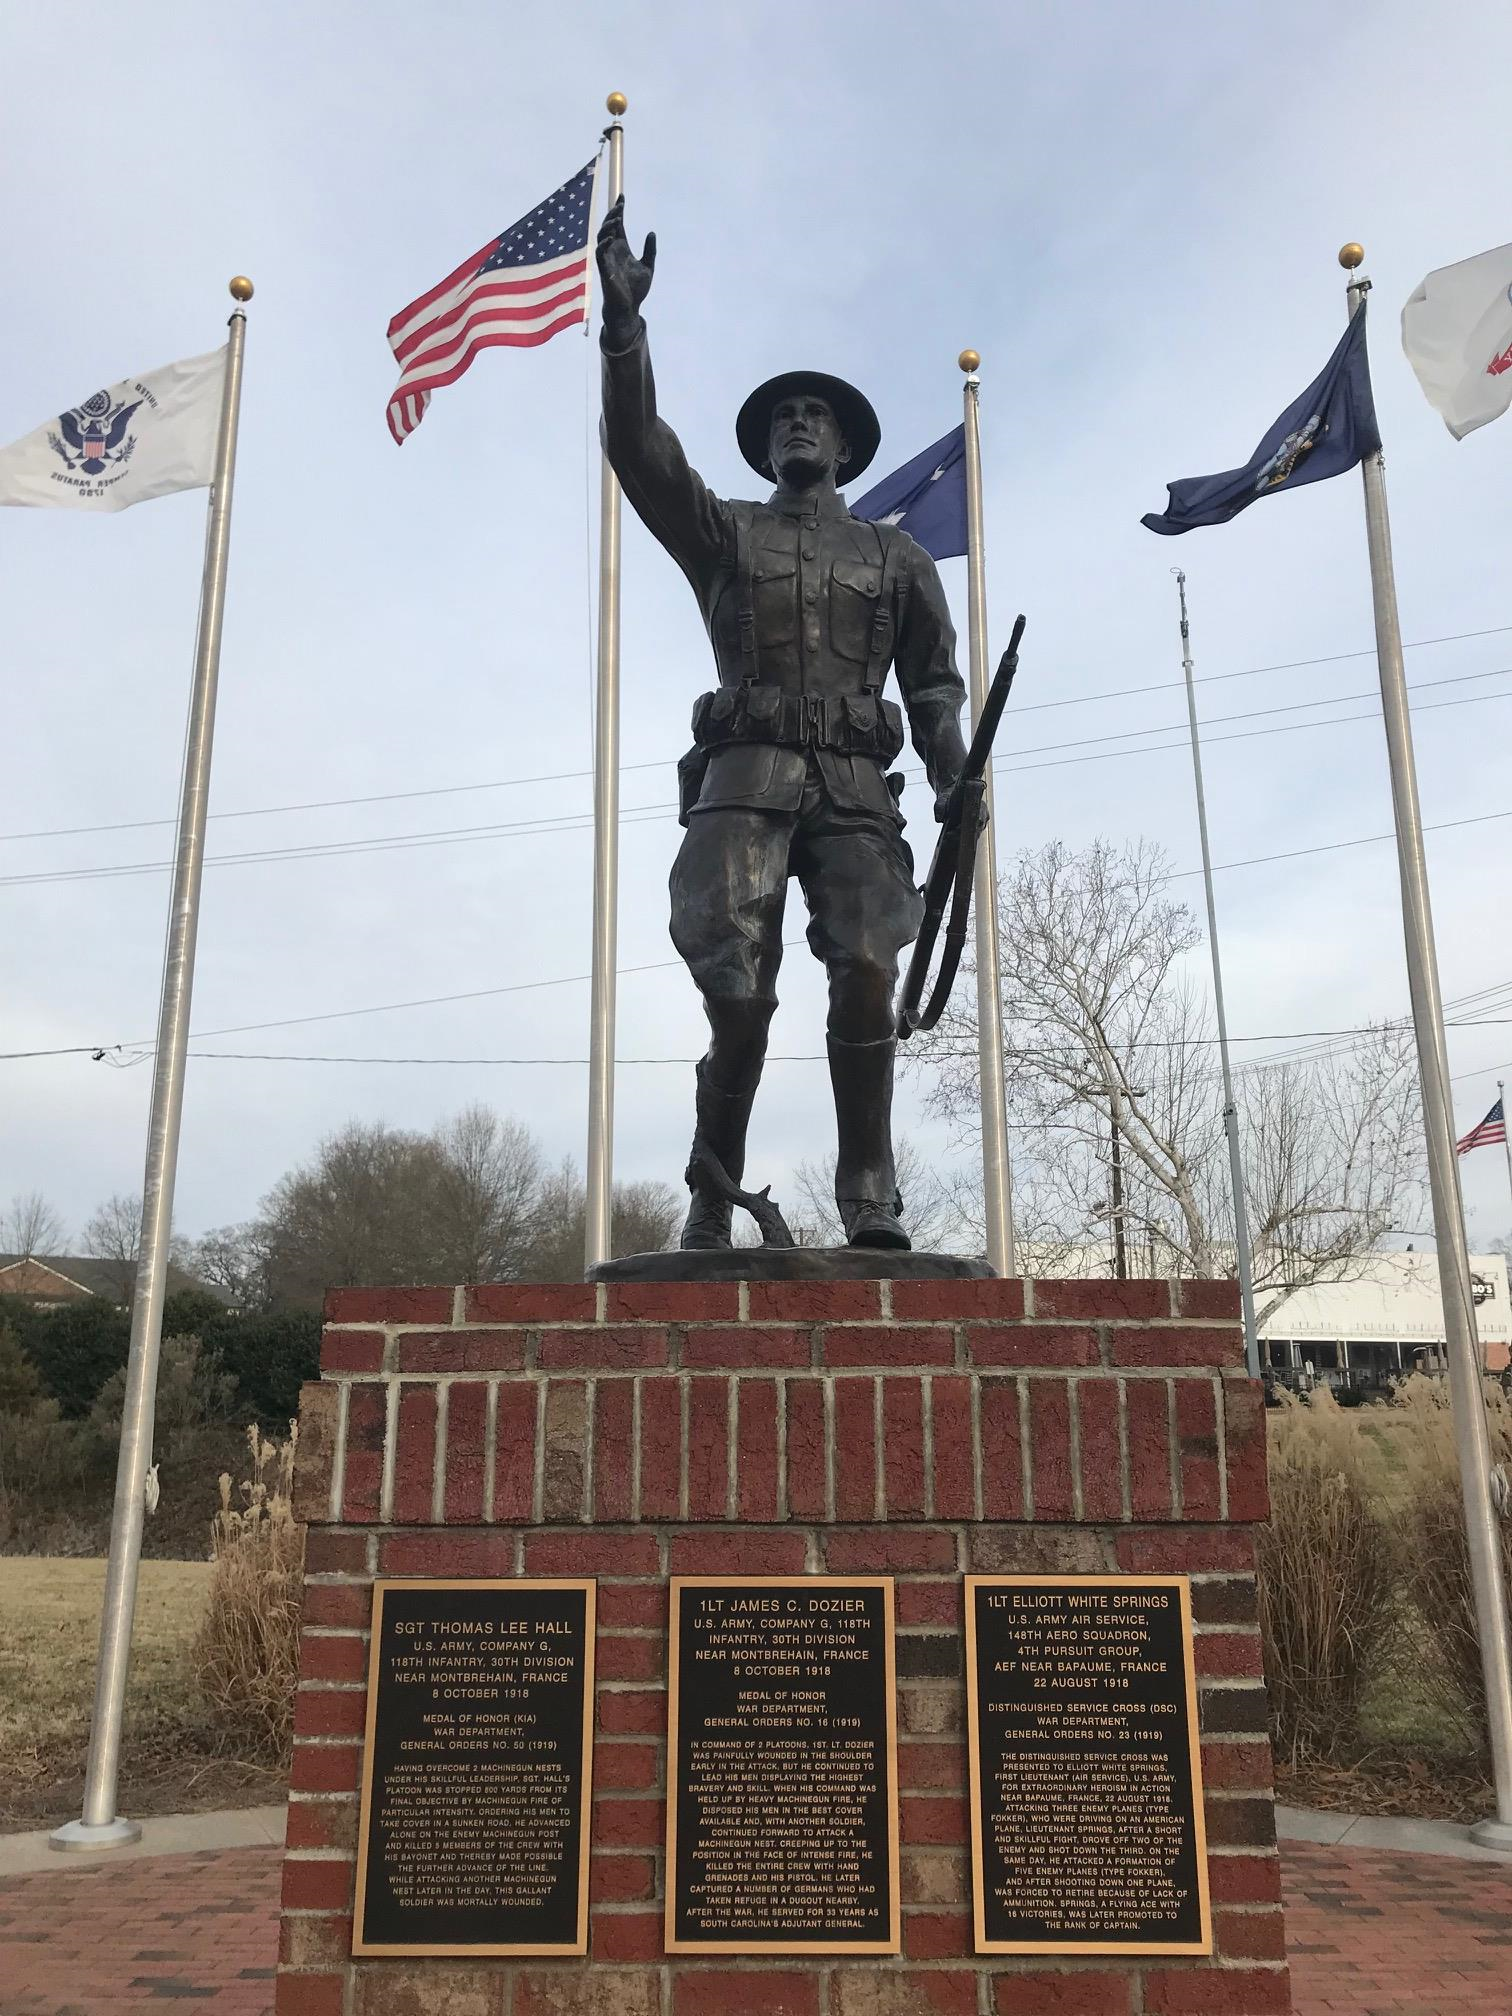 Soldier statue at Veteran's Park